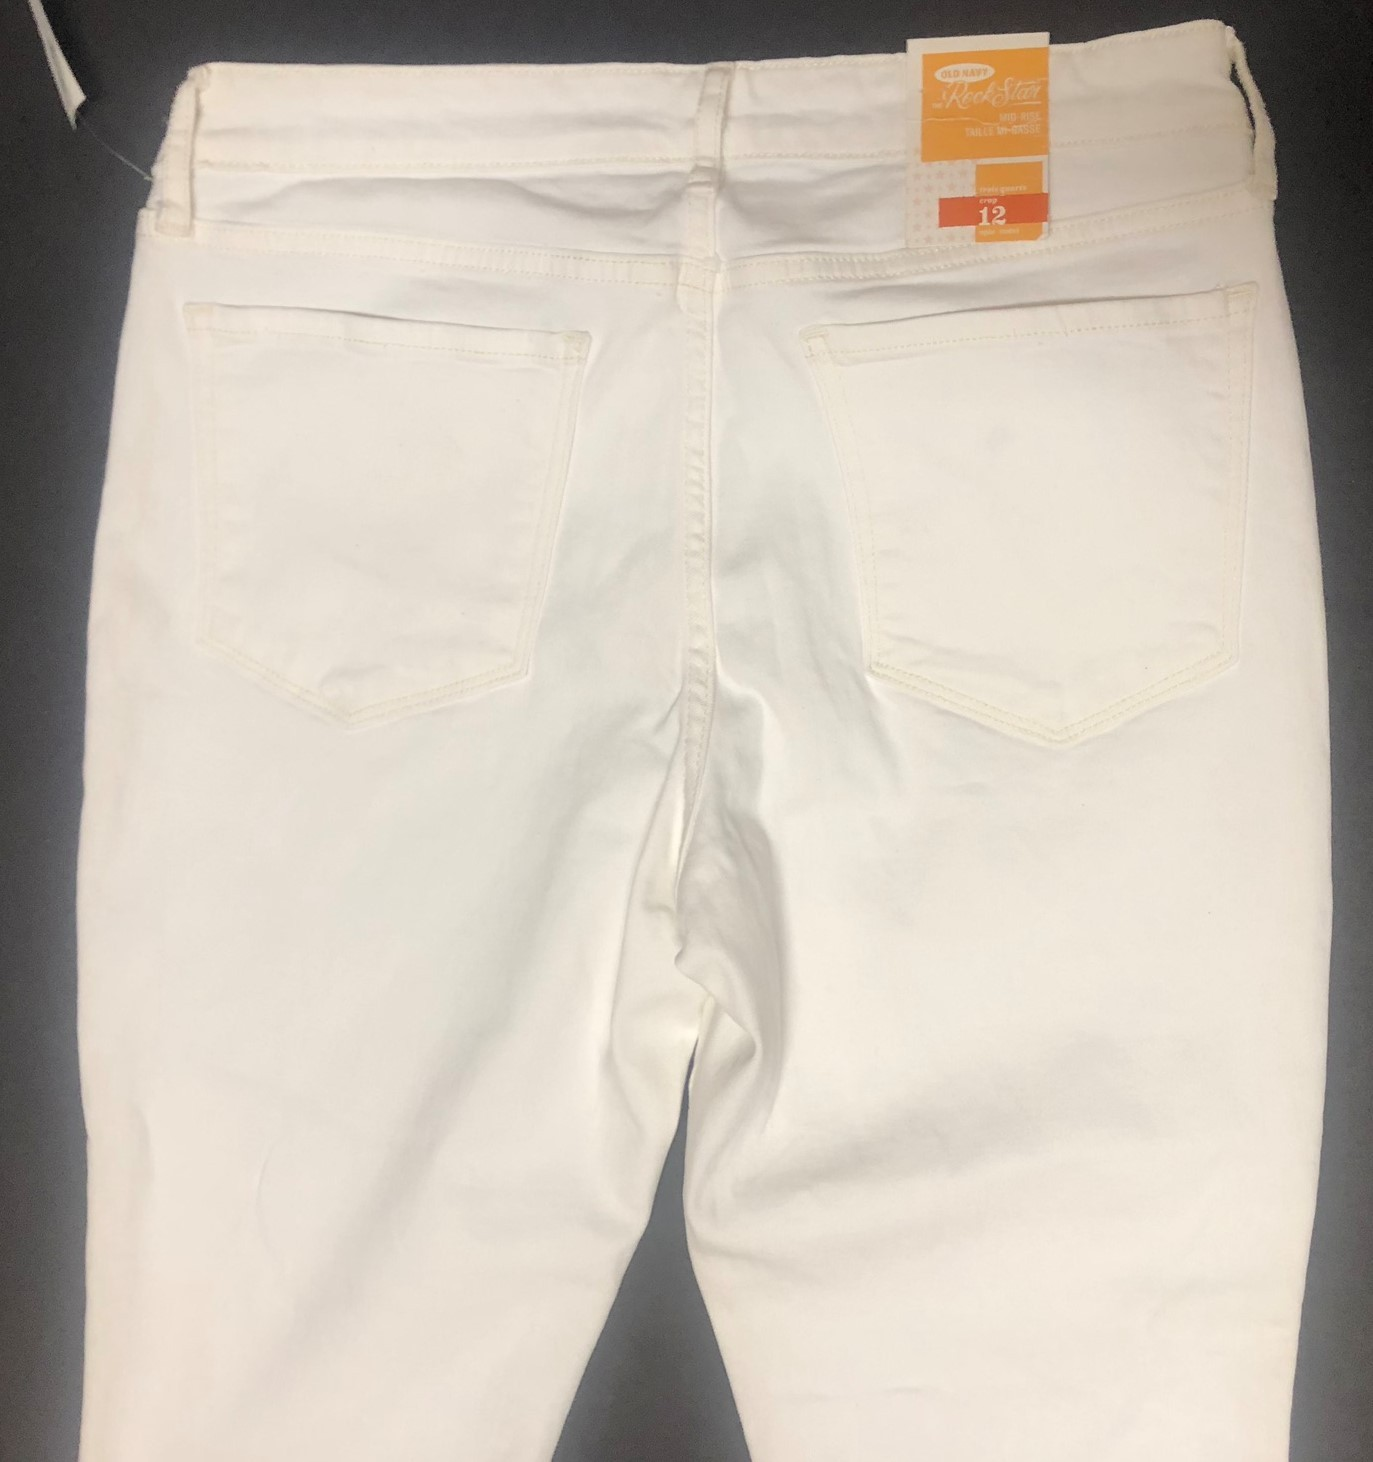 Old Navy Rock Star White Crop Jeans Sz 12 image 5